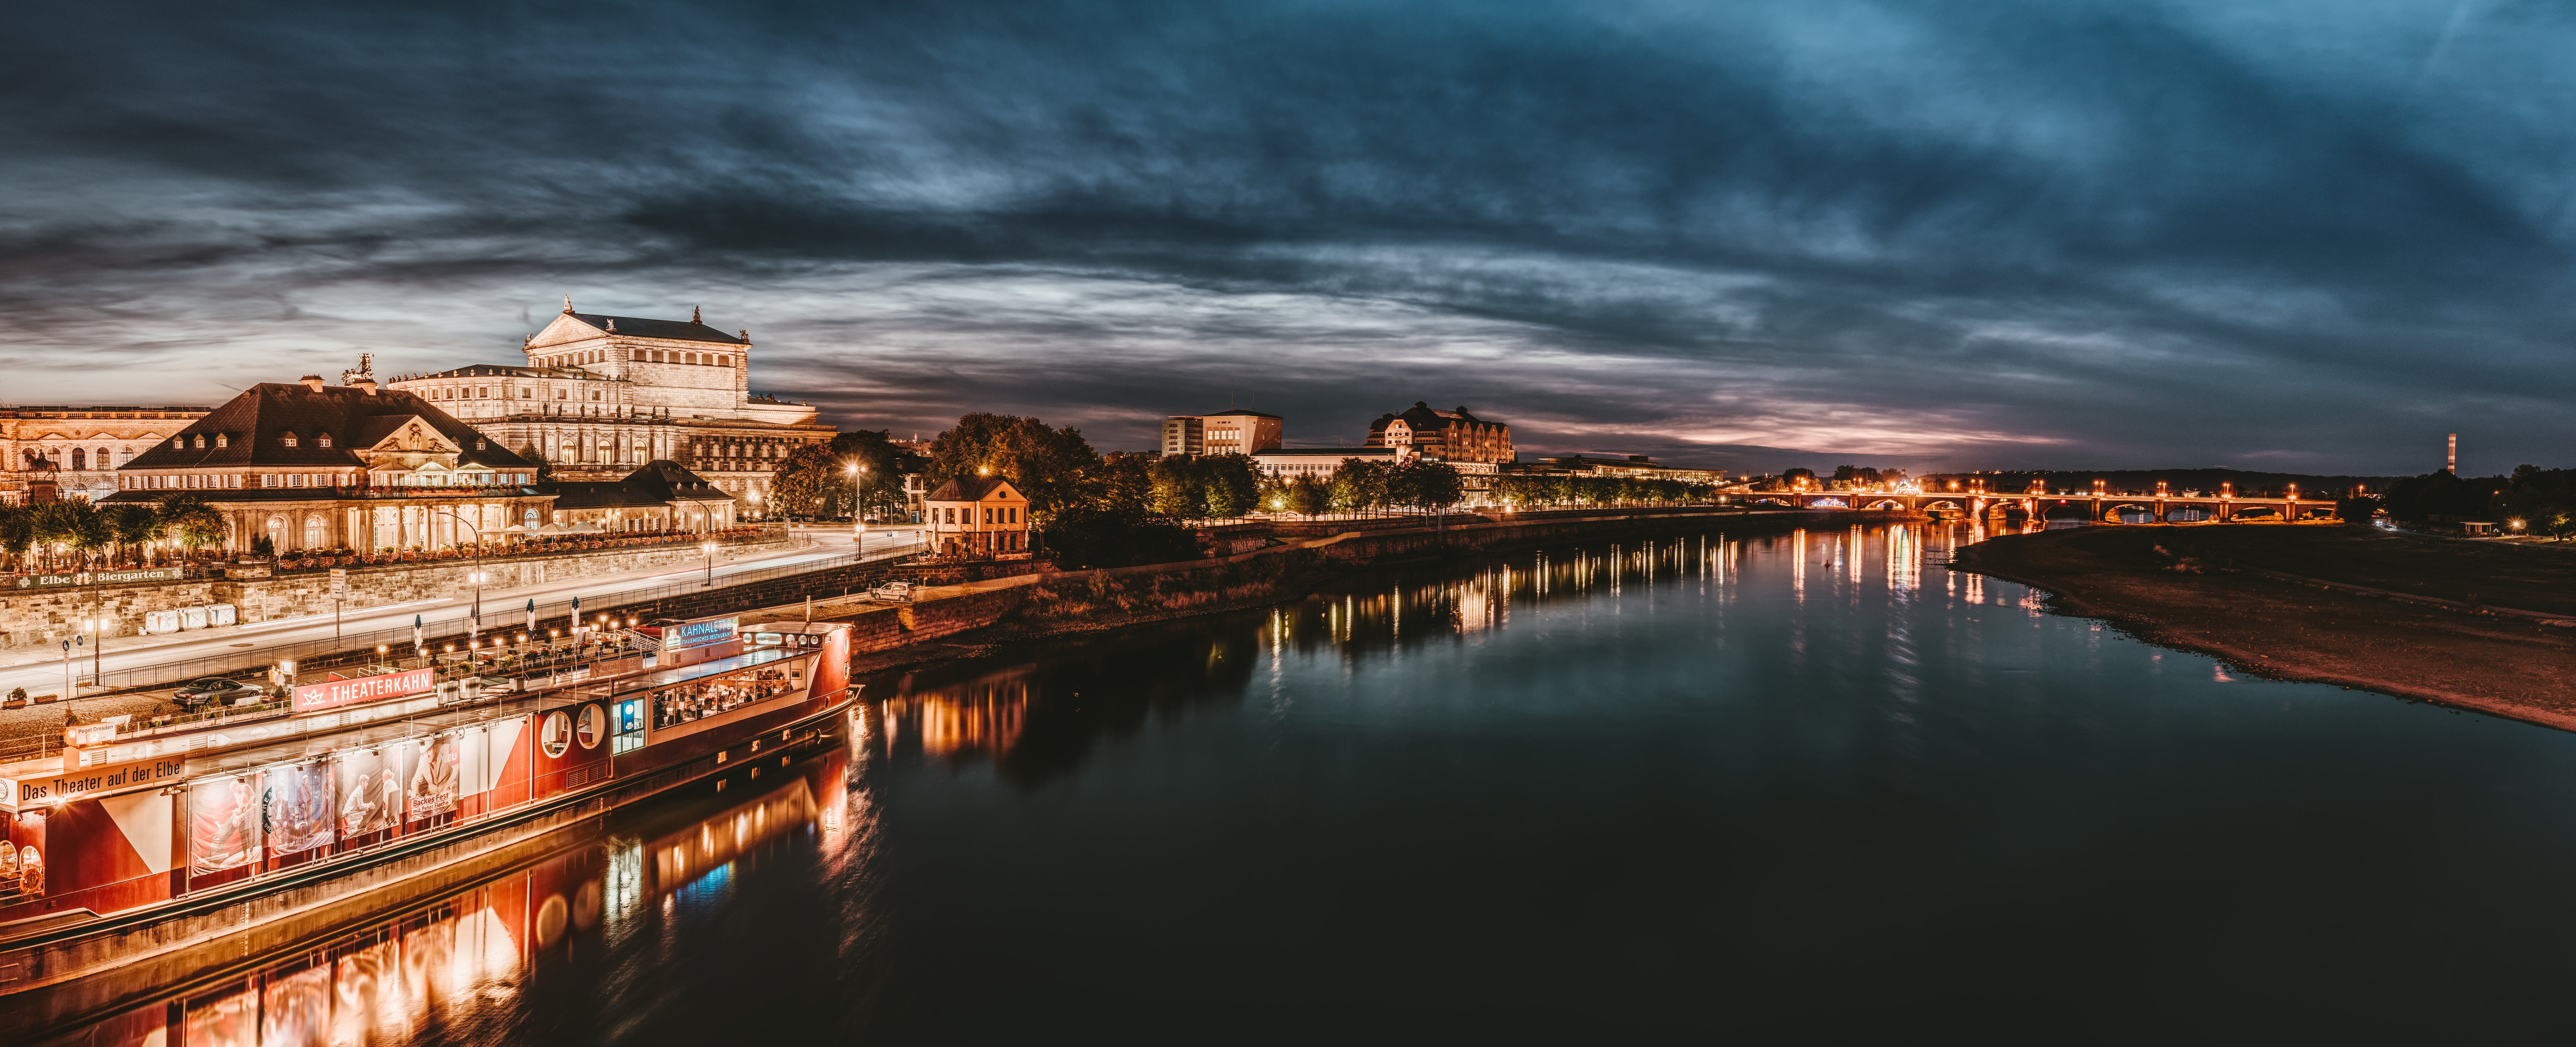 Panoramic Photography of City Buildings during Nighttime